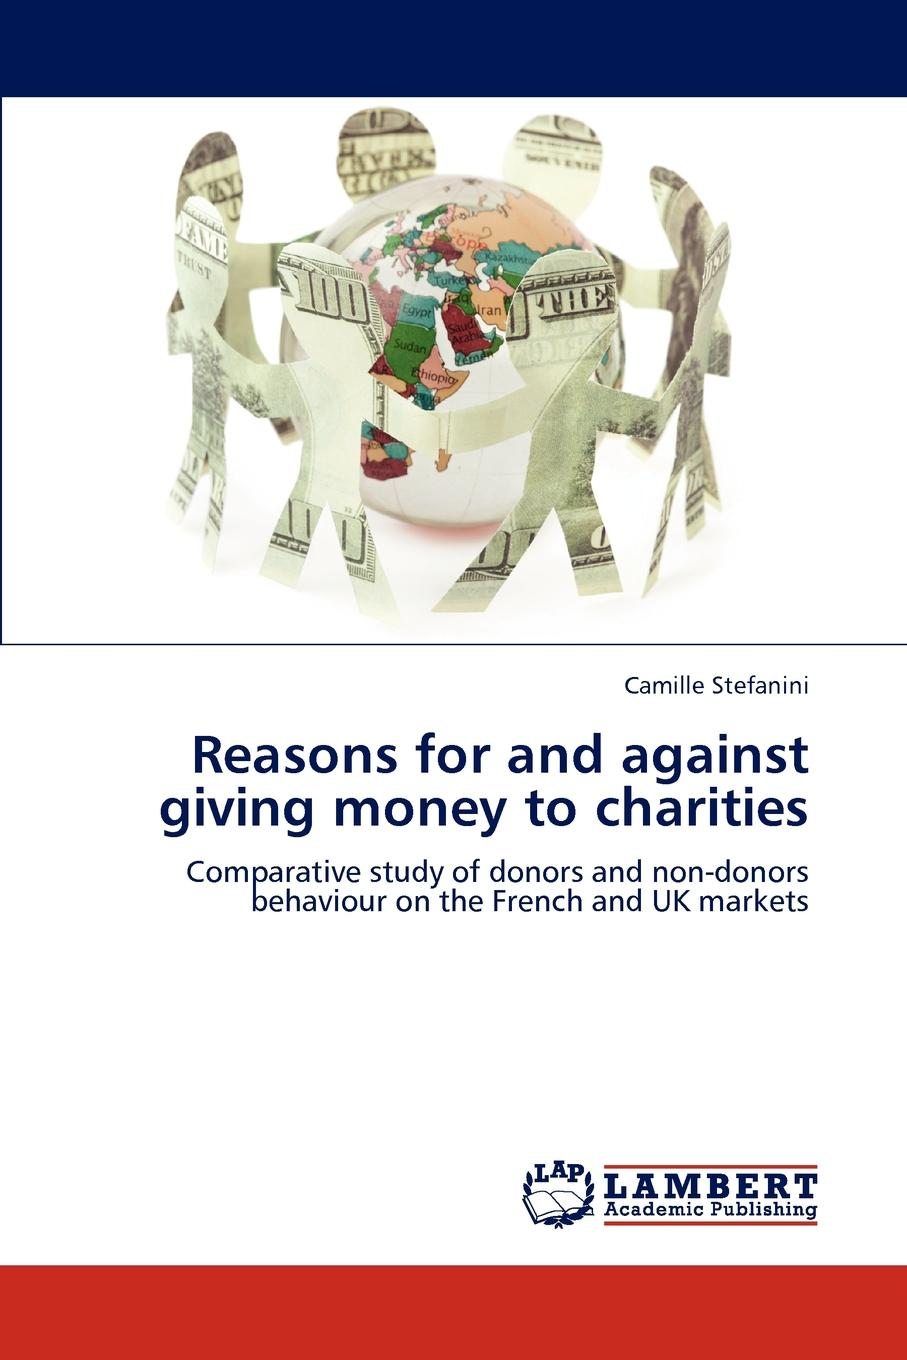 Camille Stefanini Reasons for and against giving money to charities james lintott w managing foundations and charitable trusts essential knowledge tools and techniques for donors and advisors